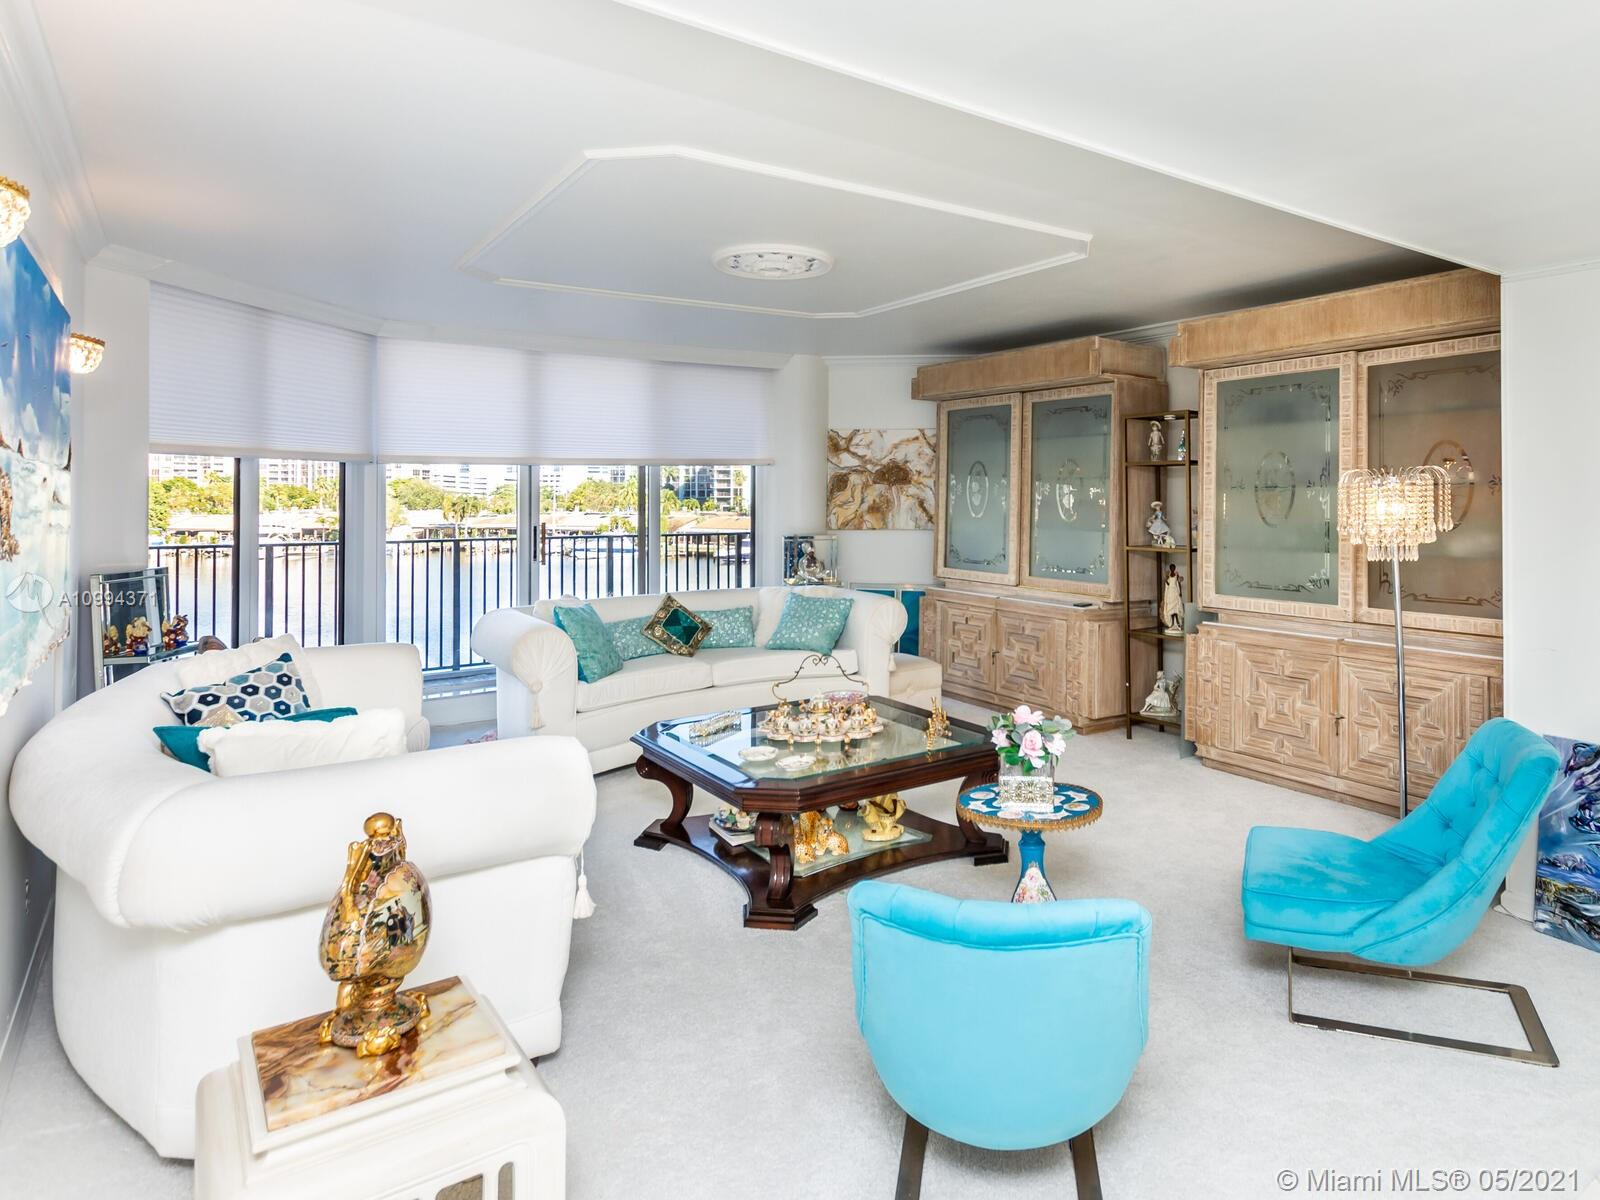 Photo of 300 Three Islands Blvd #402, Hallandale Beach, Florida, 33009 - This is the view from your private balcony